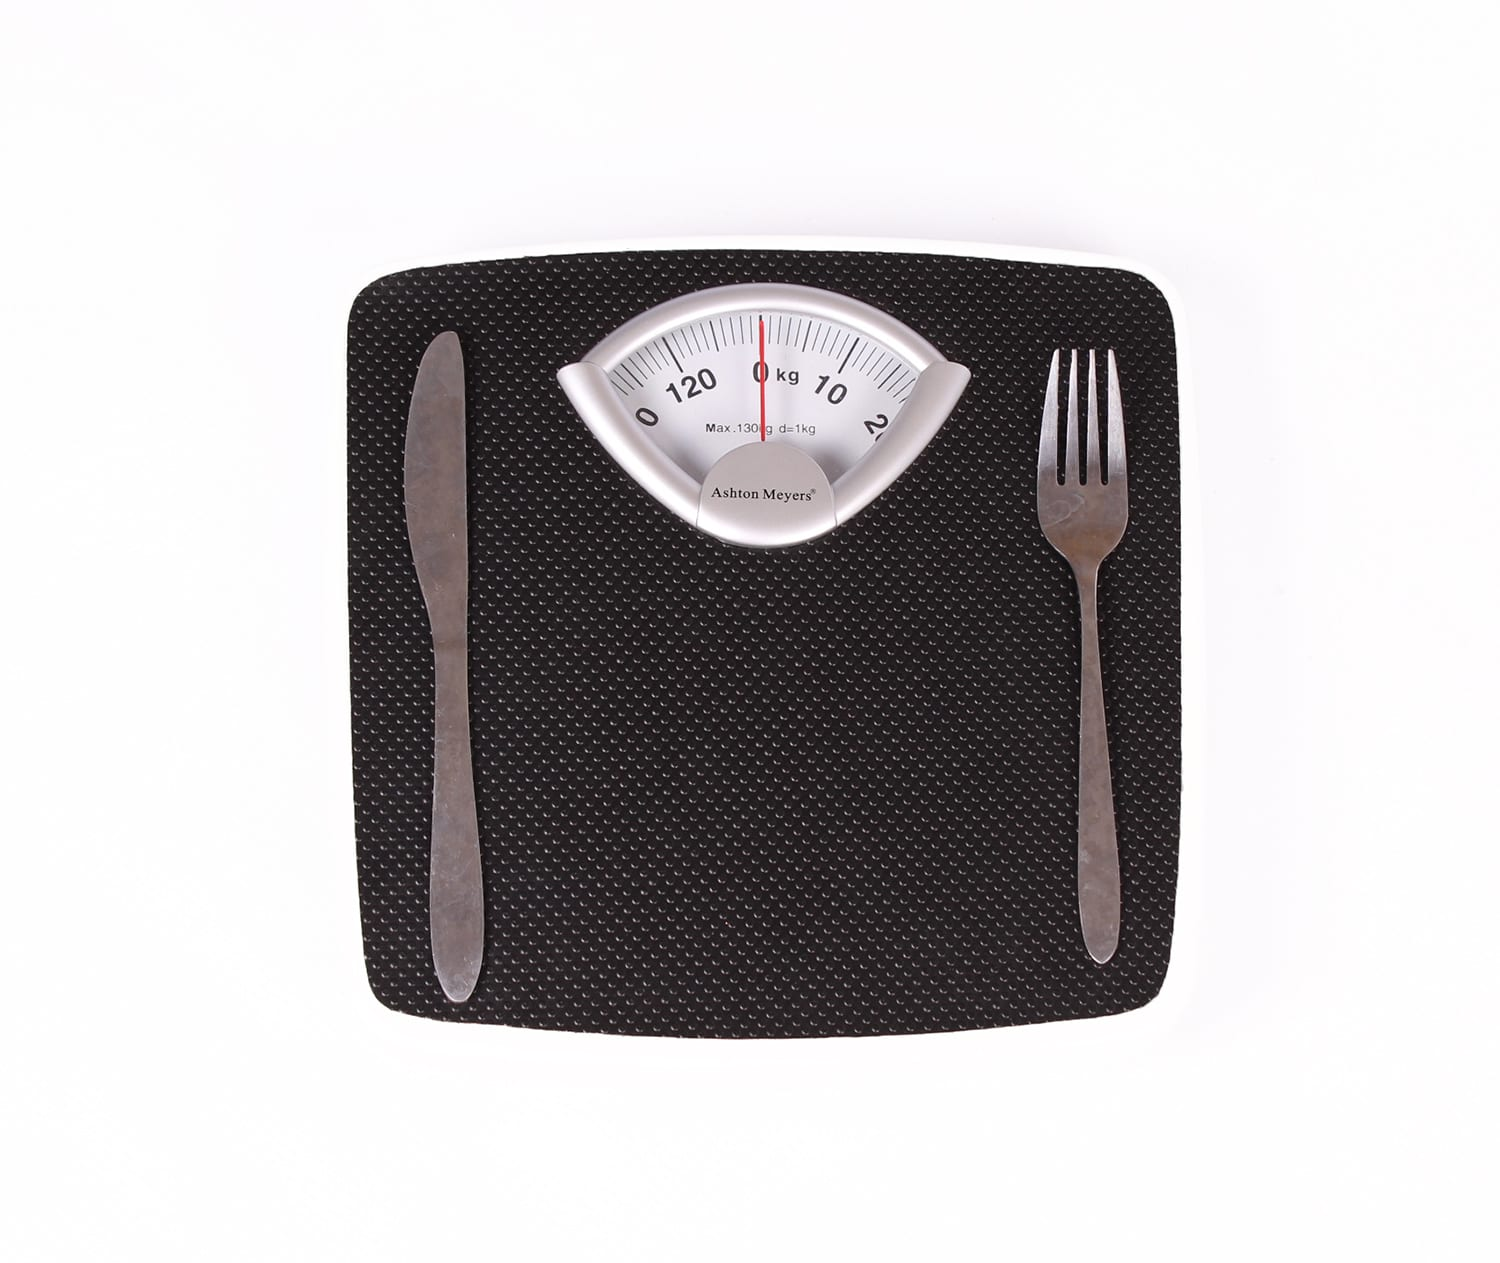 knife fork scale